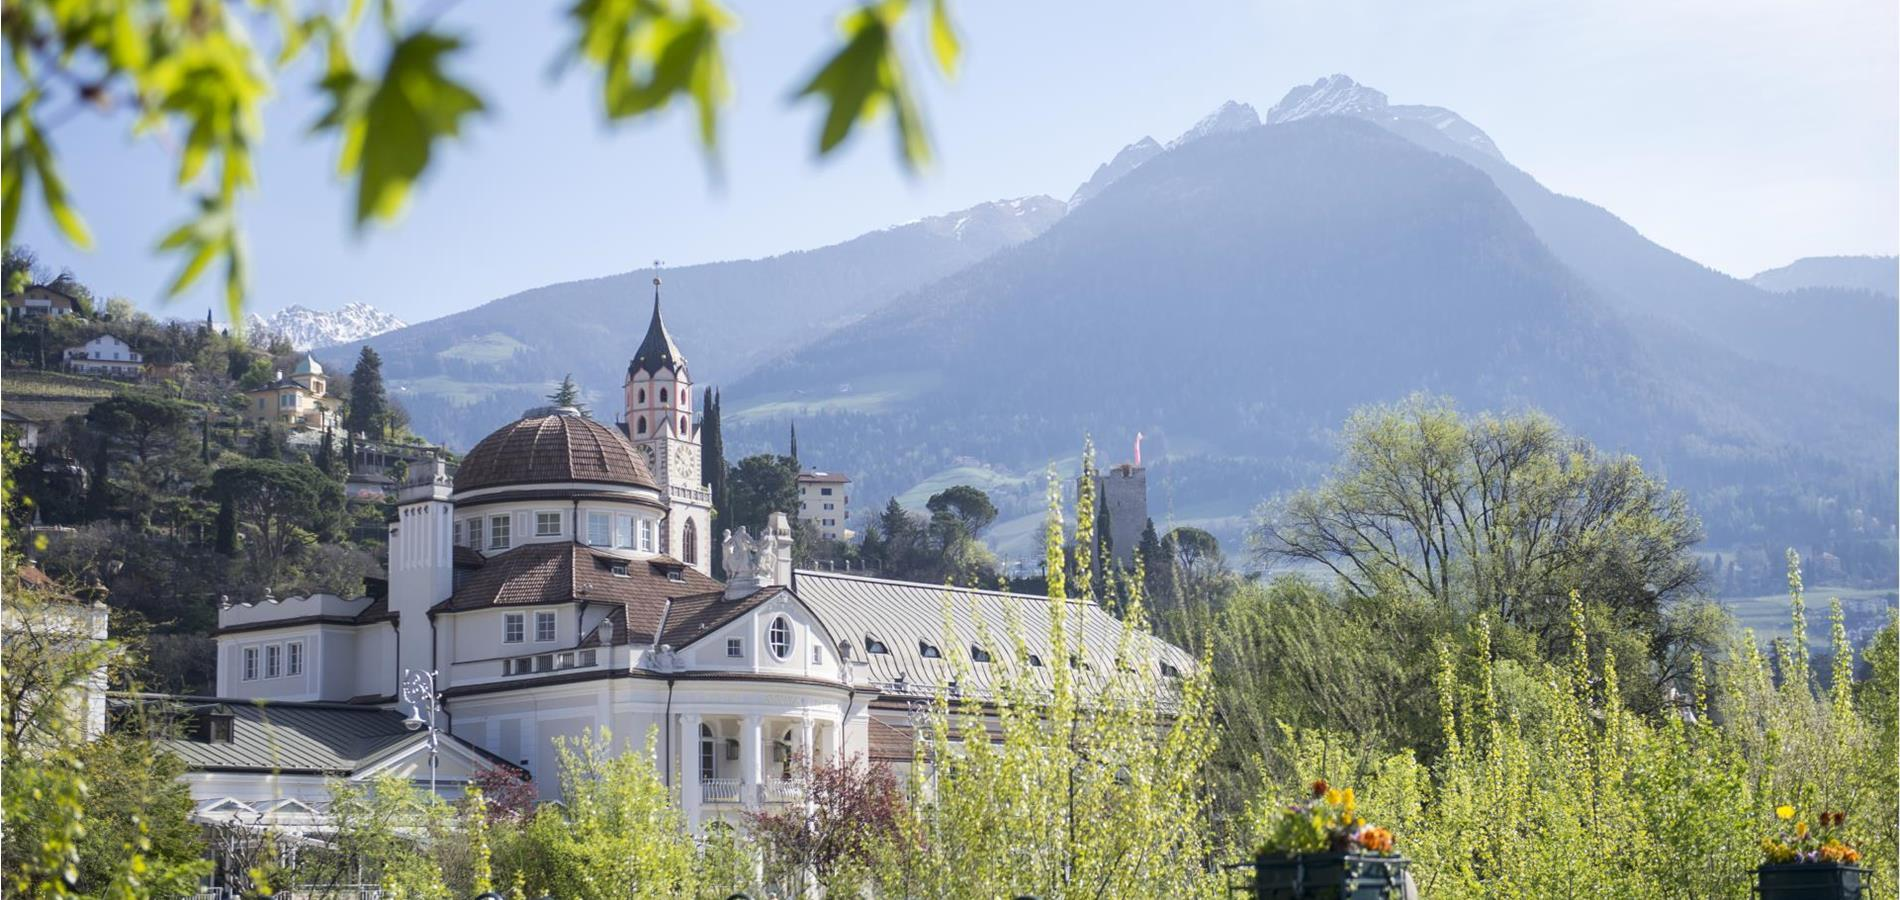 The Spa Town of Merano in South Tyrol